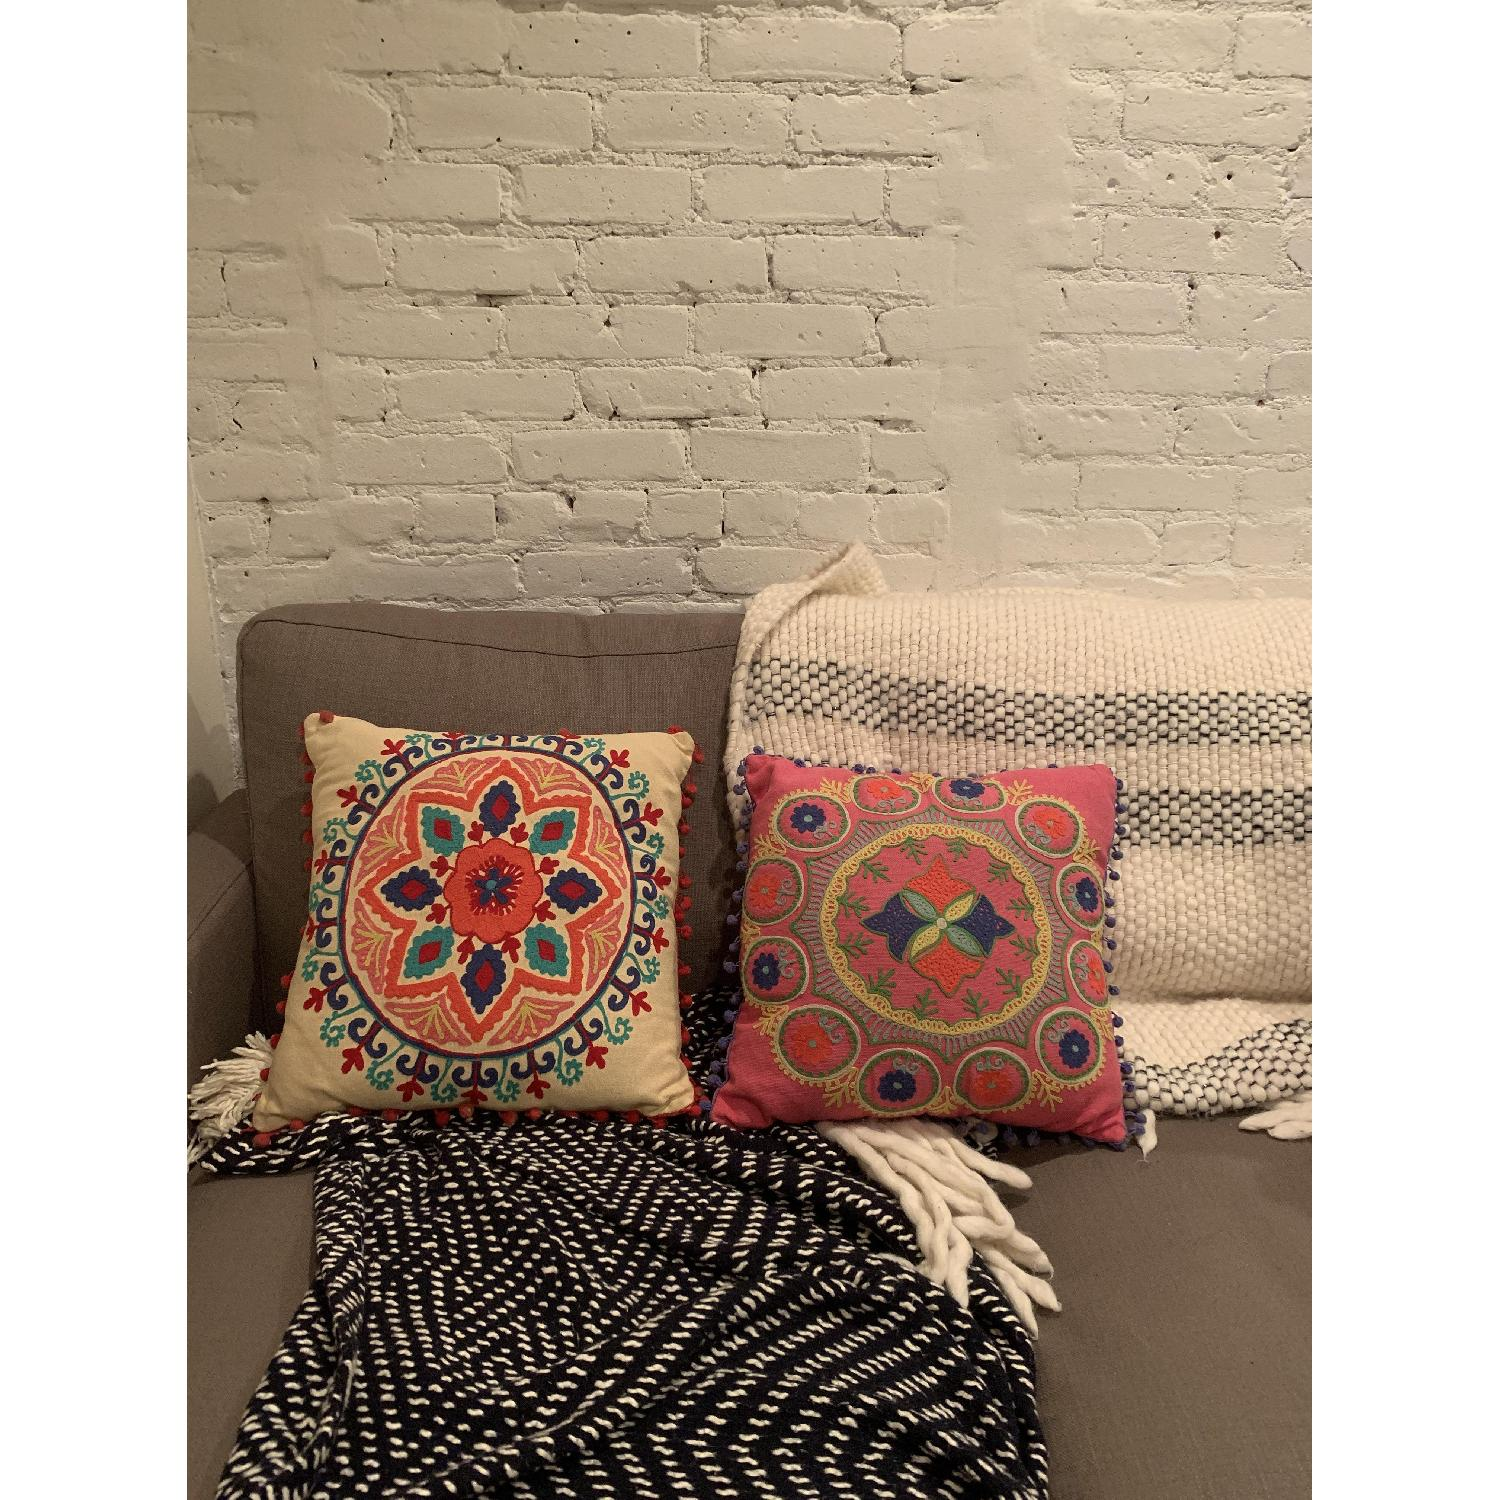 Karma Living Decorative Pillows